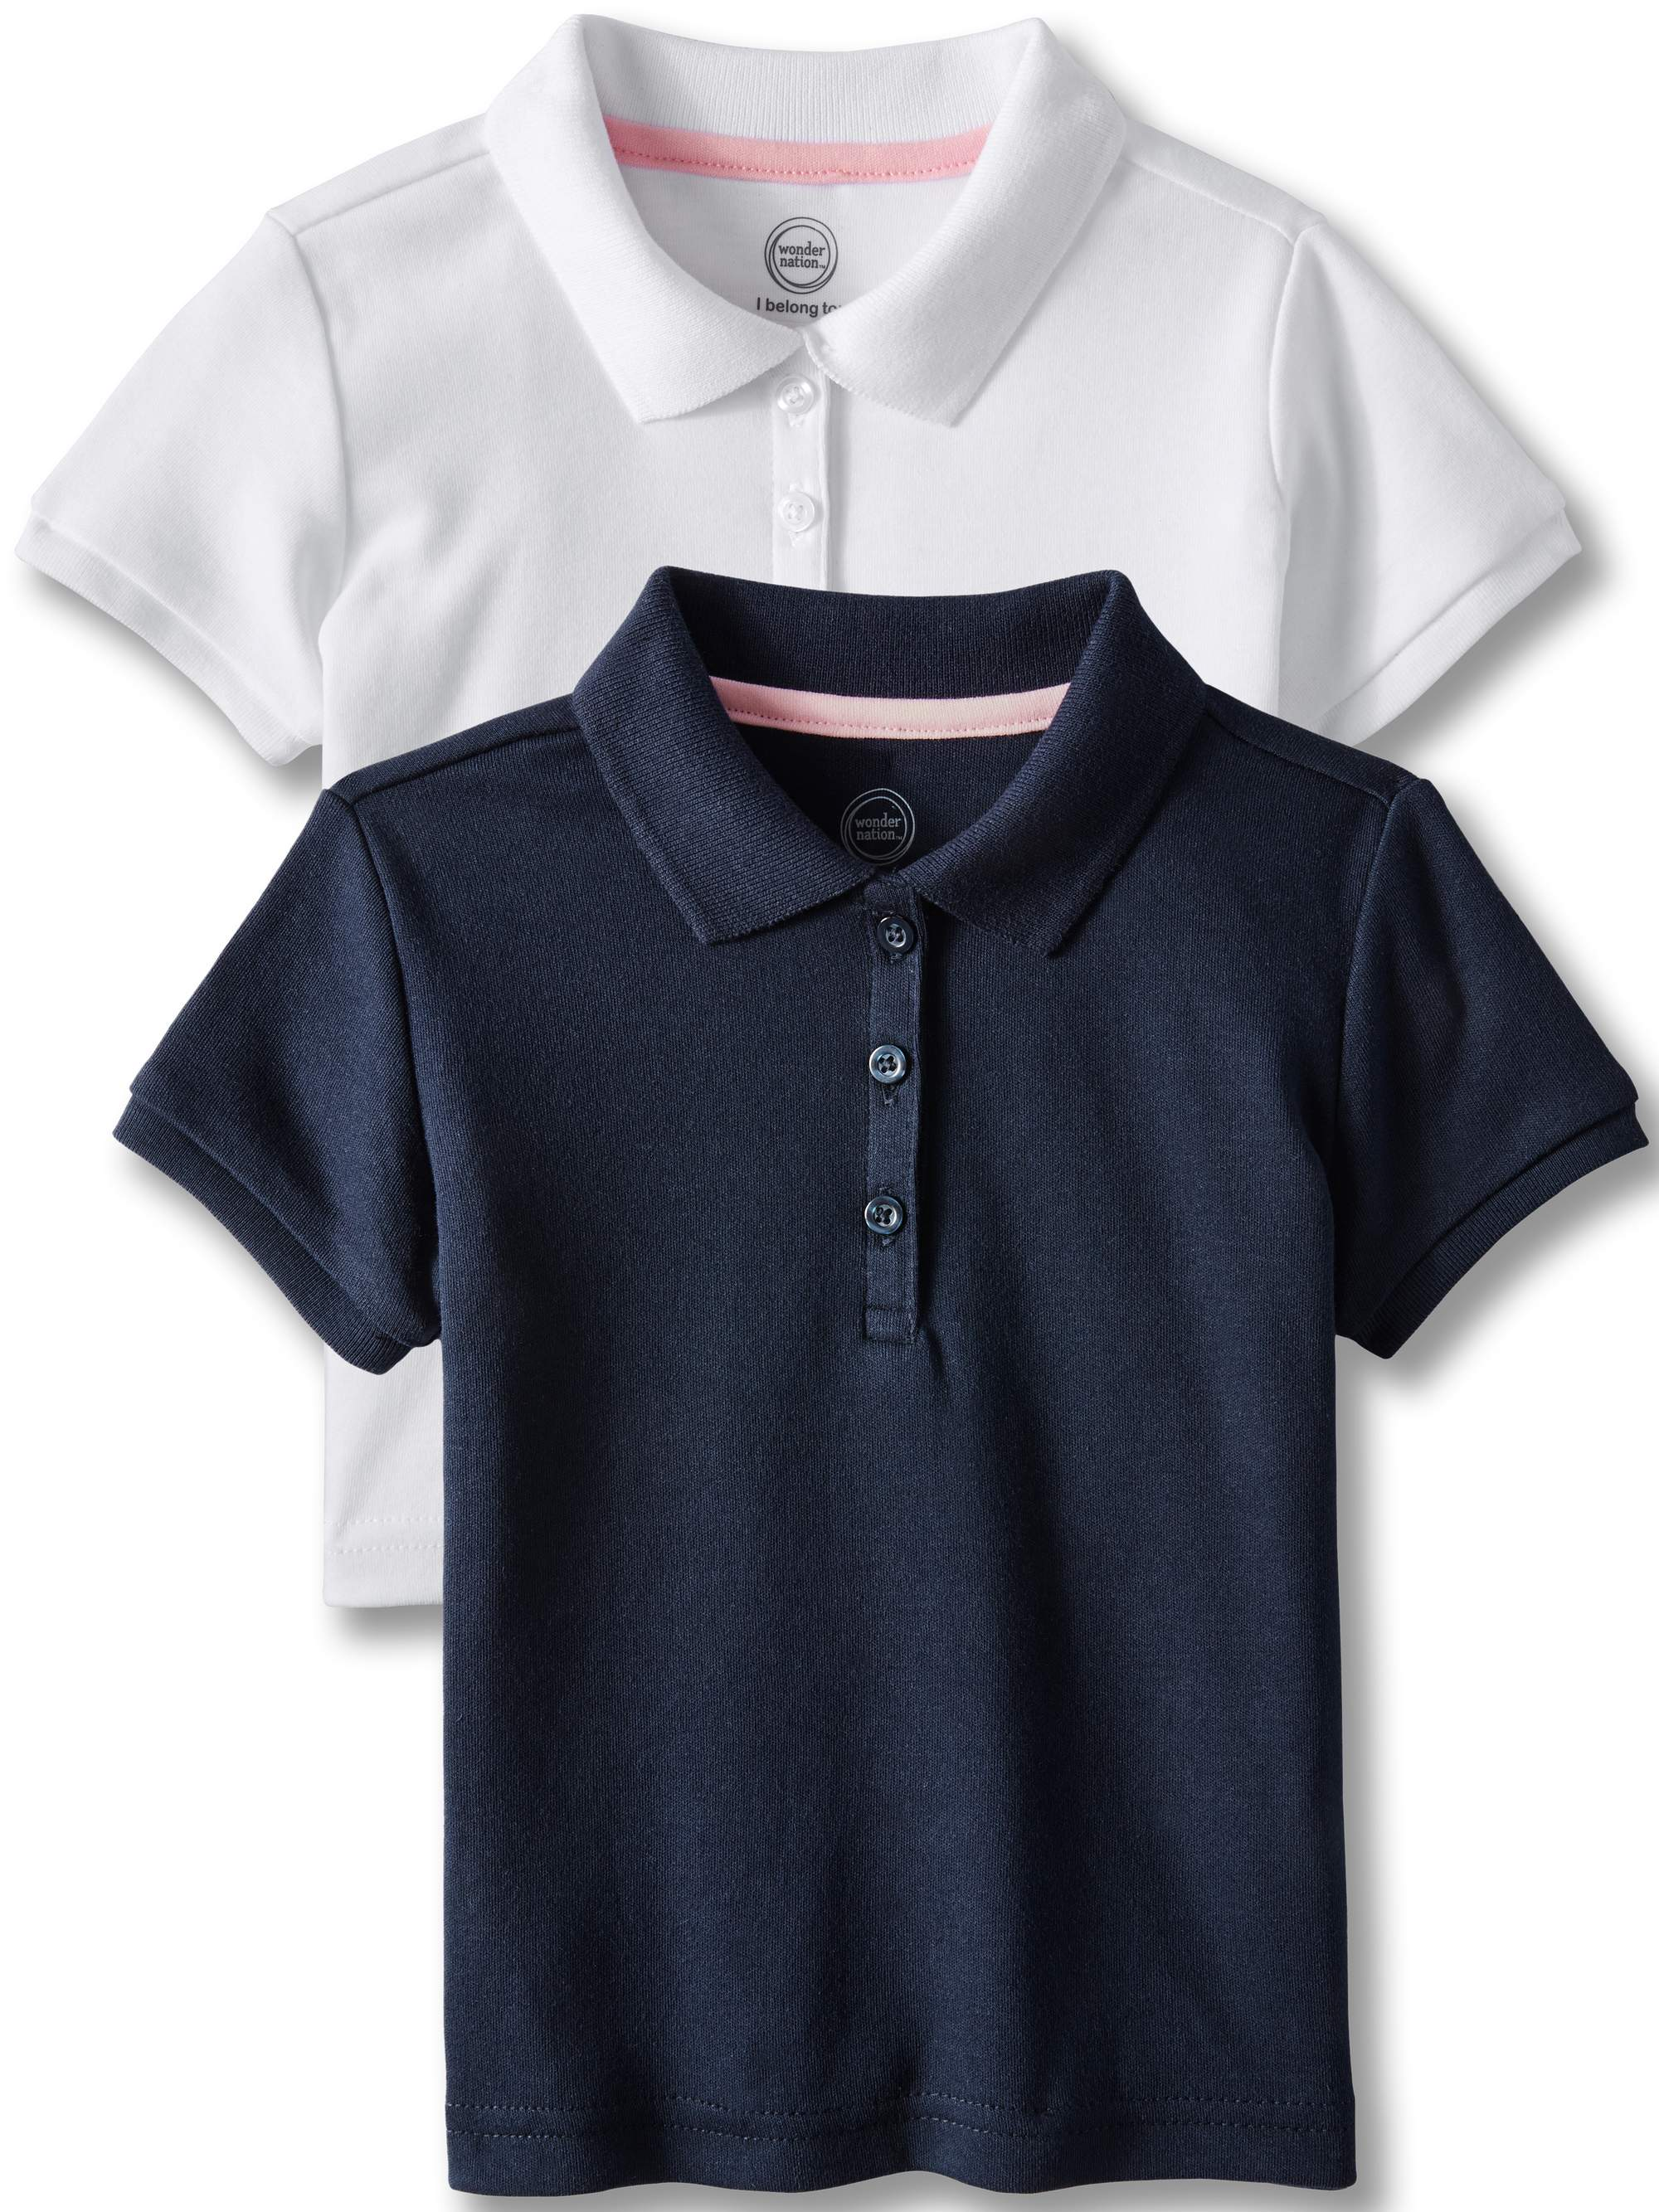 Toddler Girls School Uniform Short Sleeve Interlock Polo, 2-Pack Value Bundle